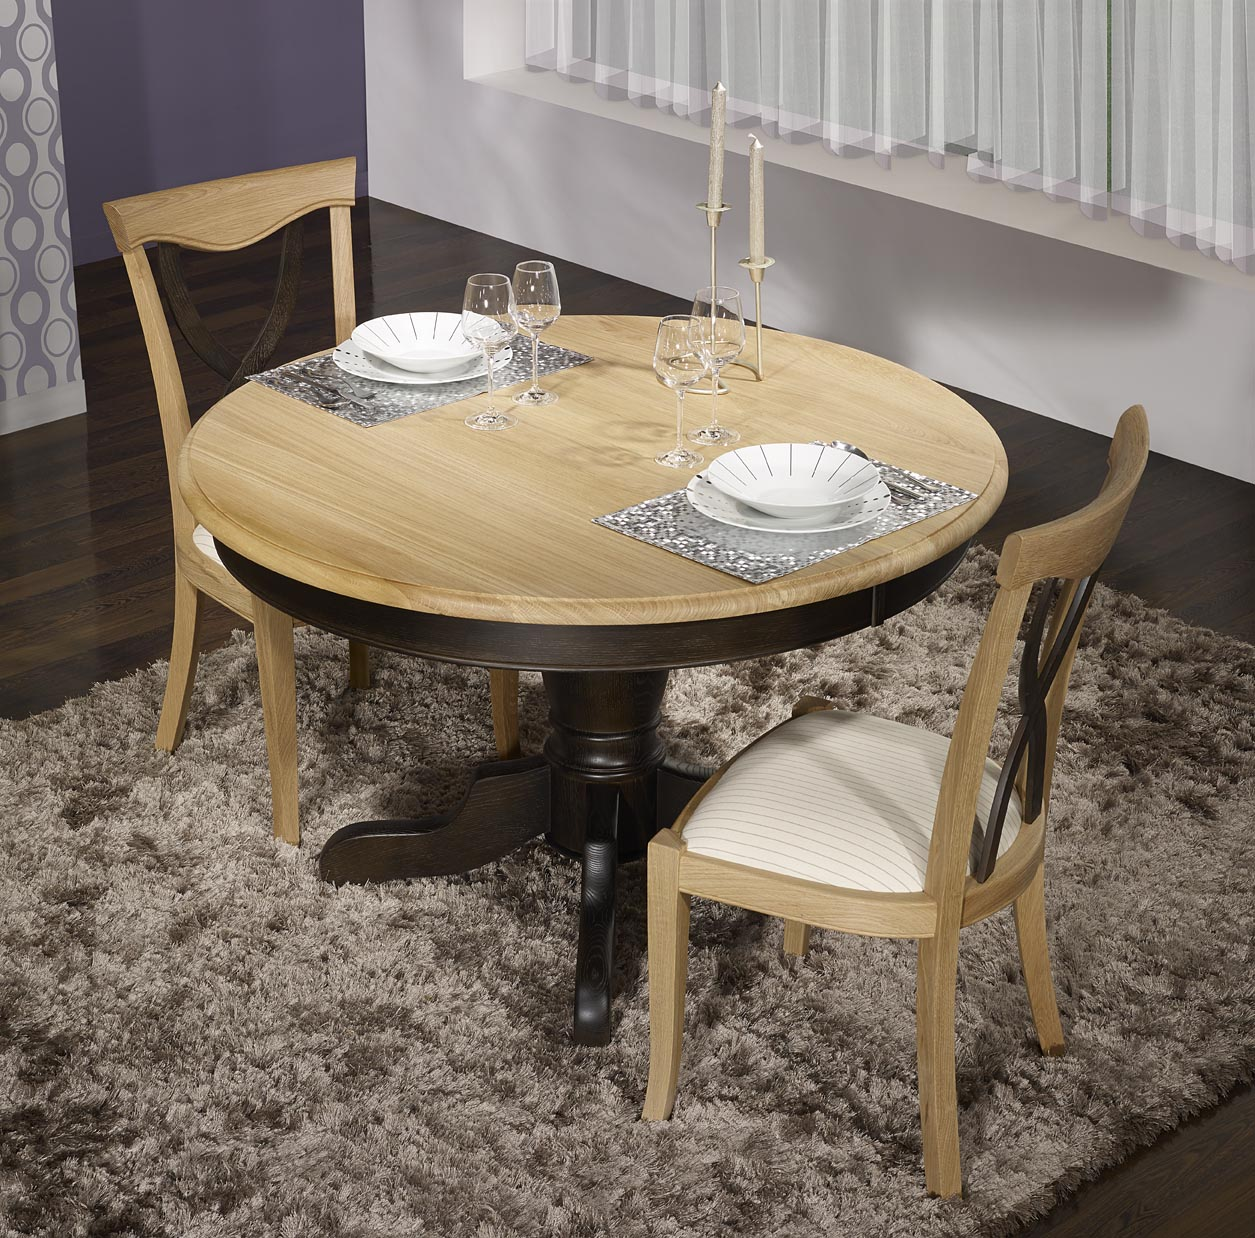 Table ronde pied central en ch ne massif de style louis - Table noir et bois ...